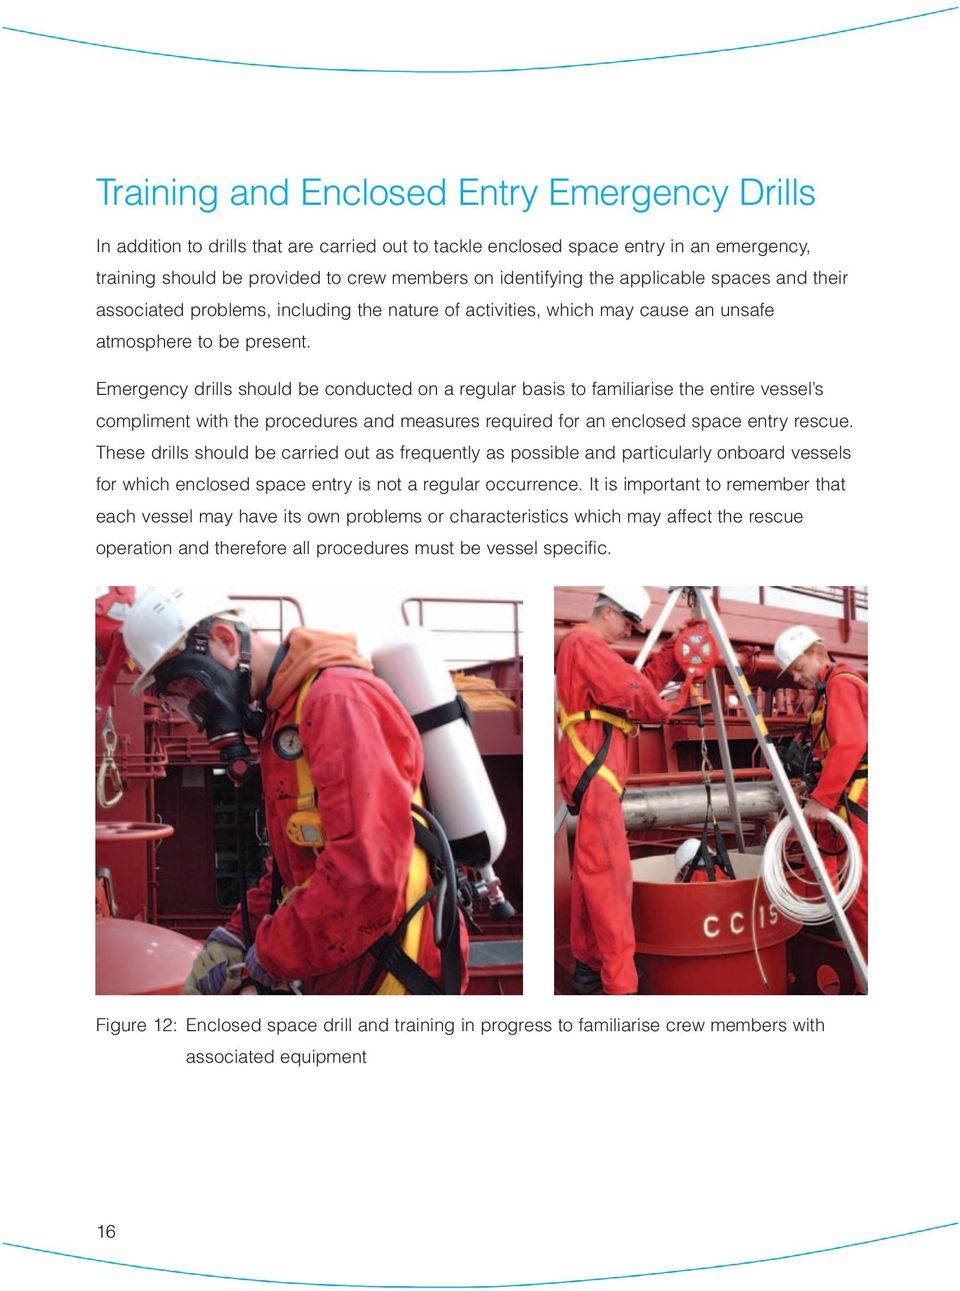 Emergency drills should be conducted on a regular basis to familiarise the entire vessel s compliment with the procedures and measures required for an enclosed space entry rescue.